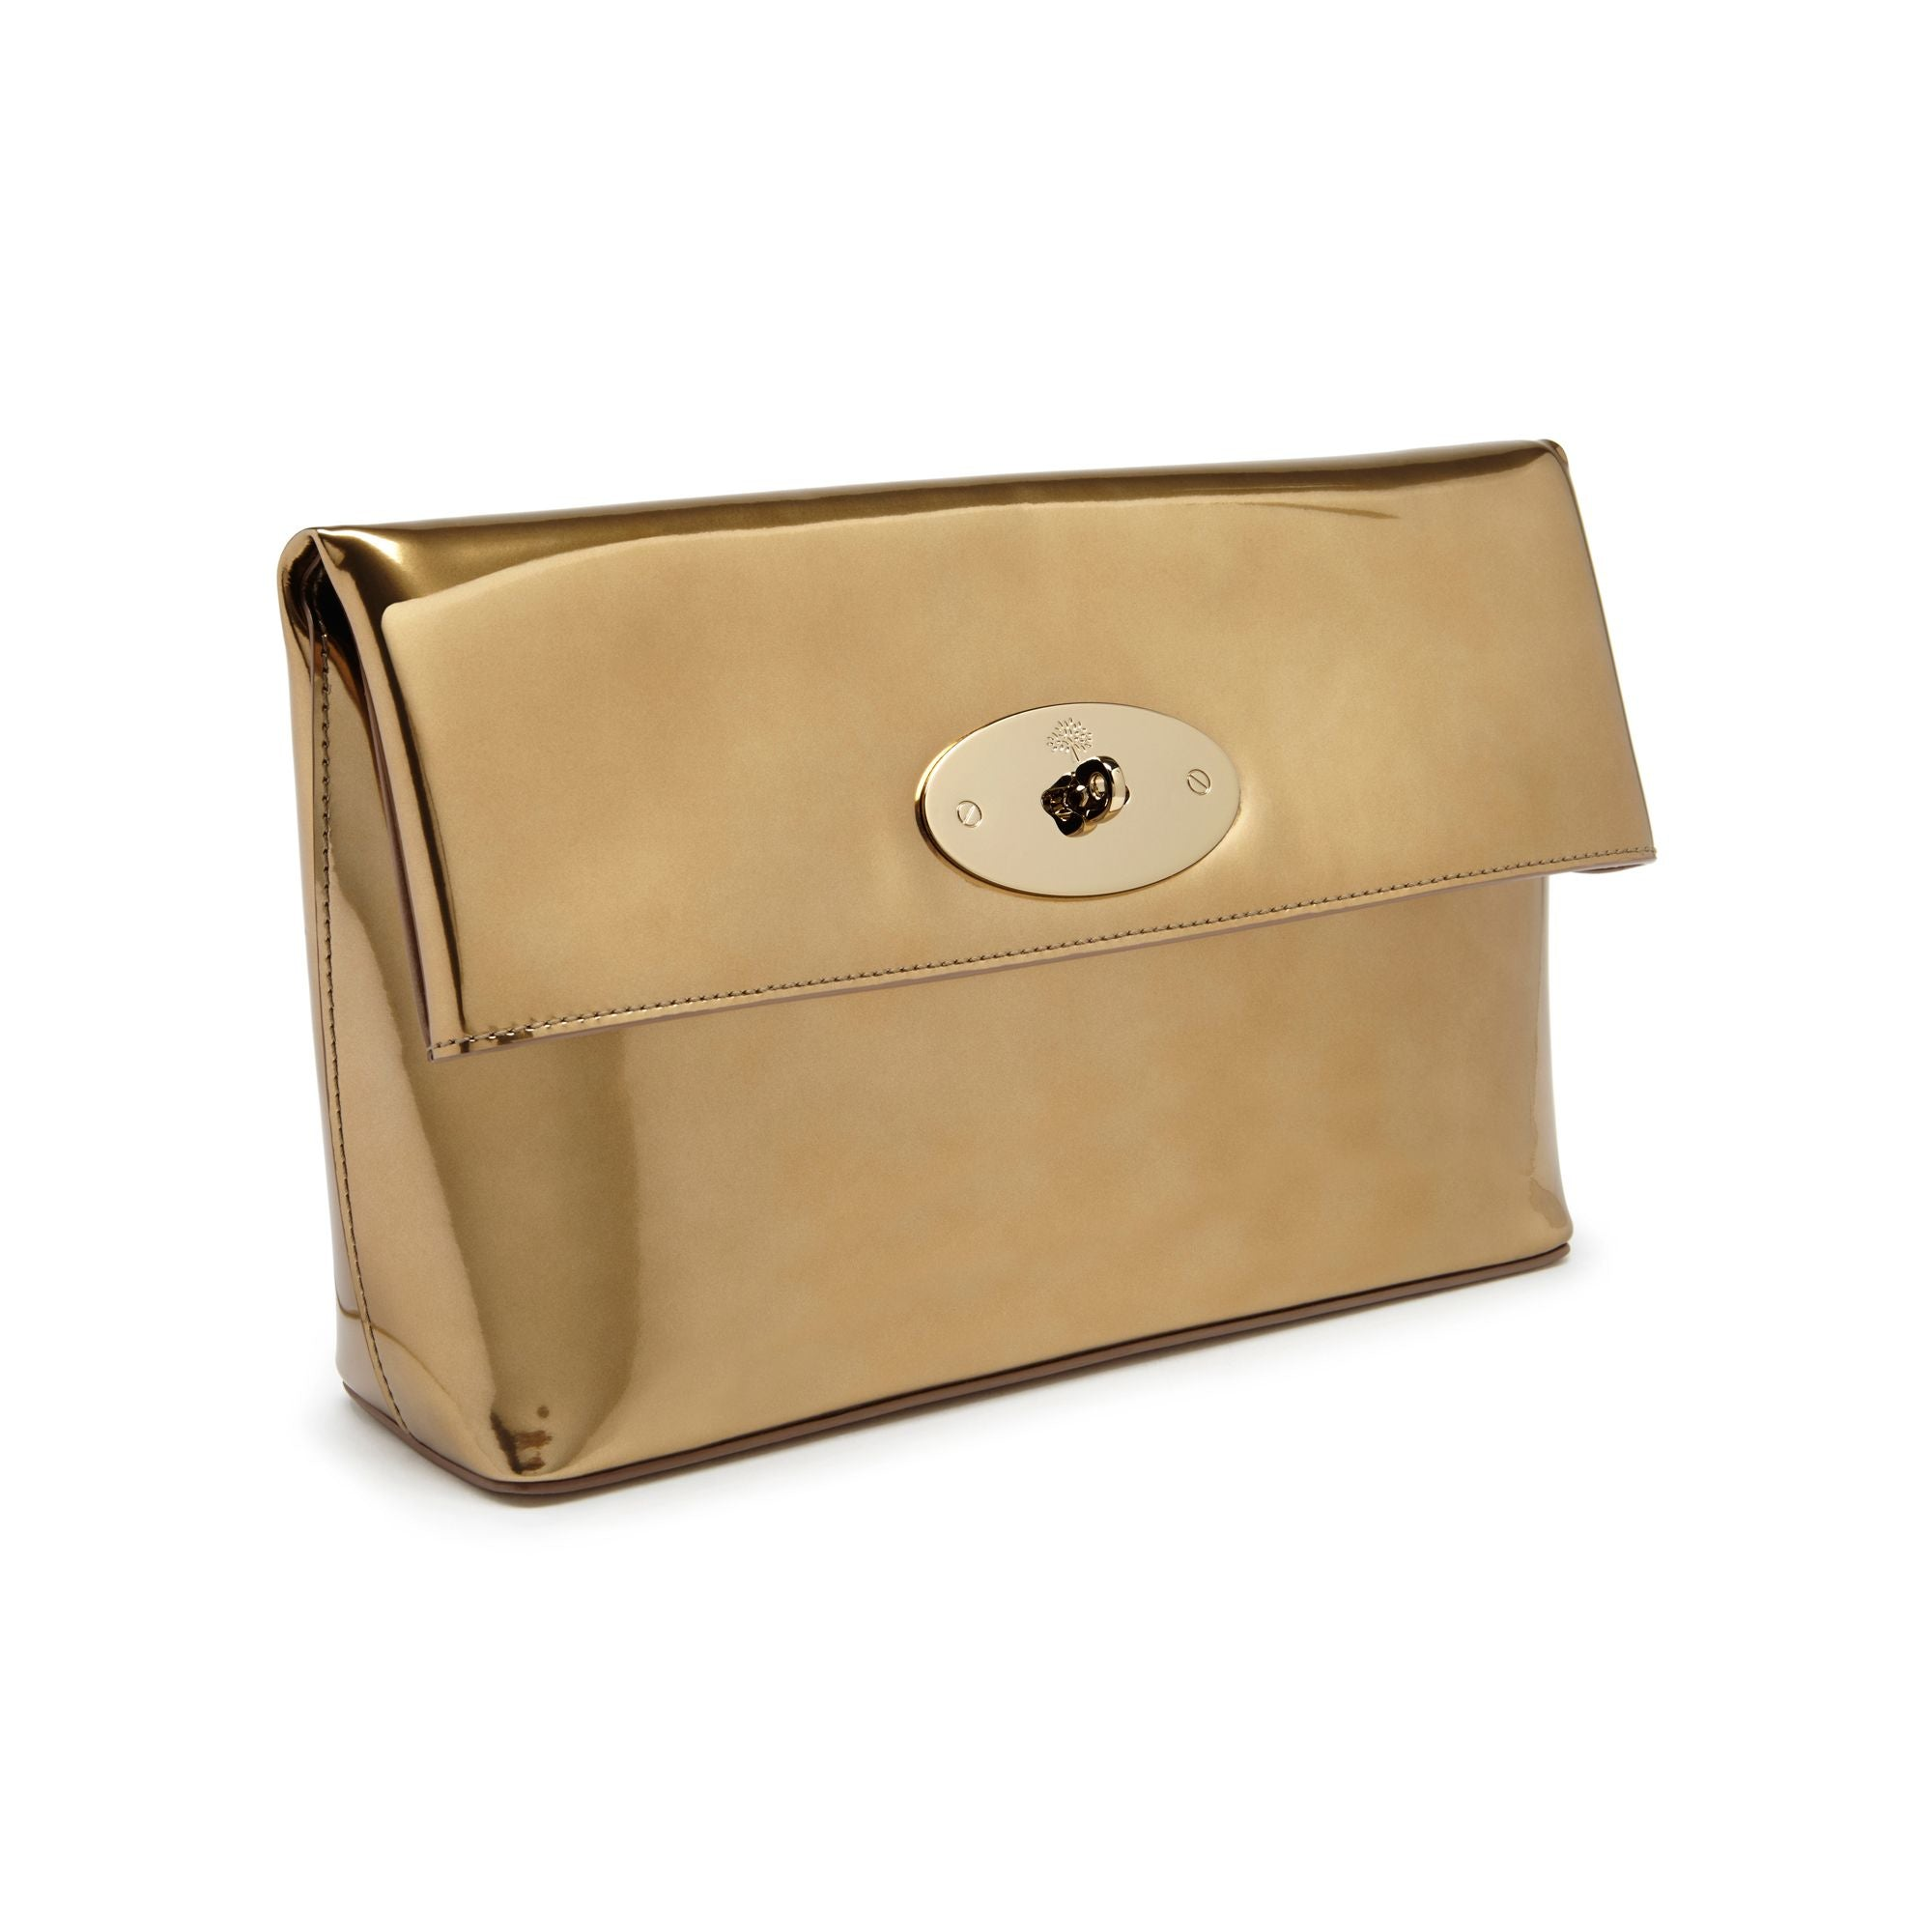 Mulberry Clemmie Clutch Gold Patent Leather - Love Luxe 0d131843d7ebd